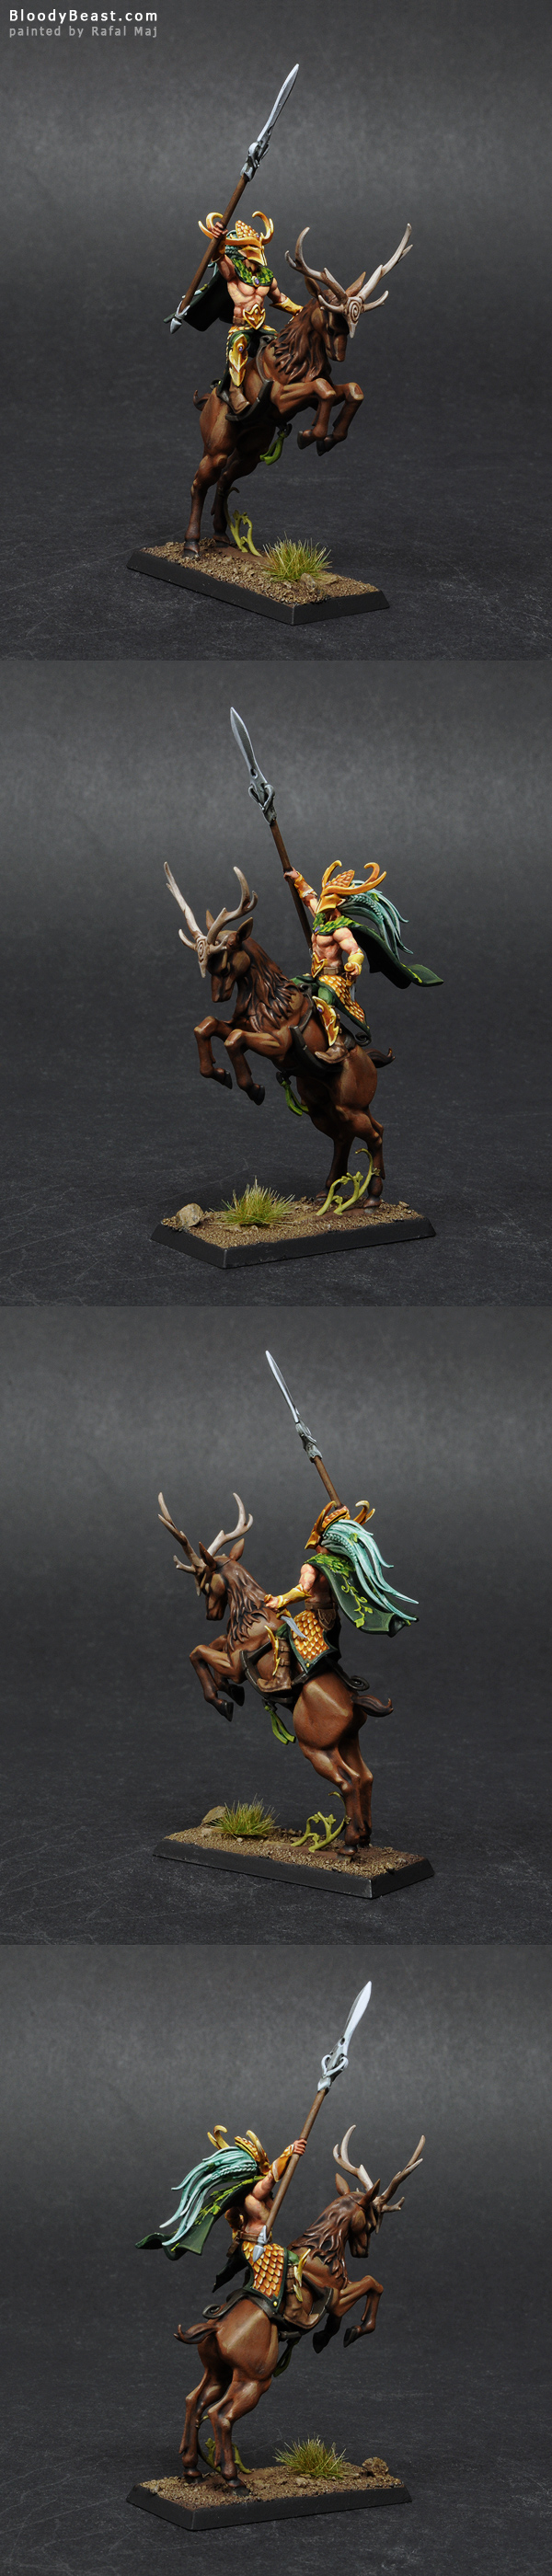 Wood Elf Wild Rider painted by Rafal Maj (BloodyBeast.com)